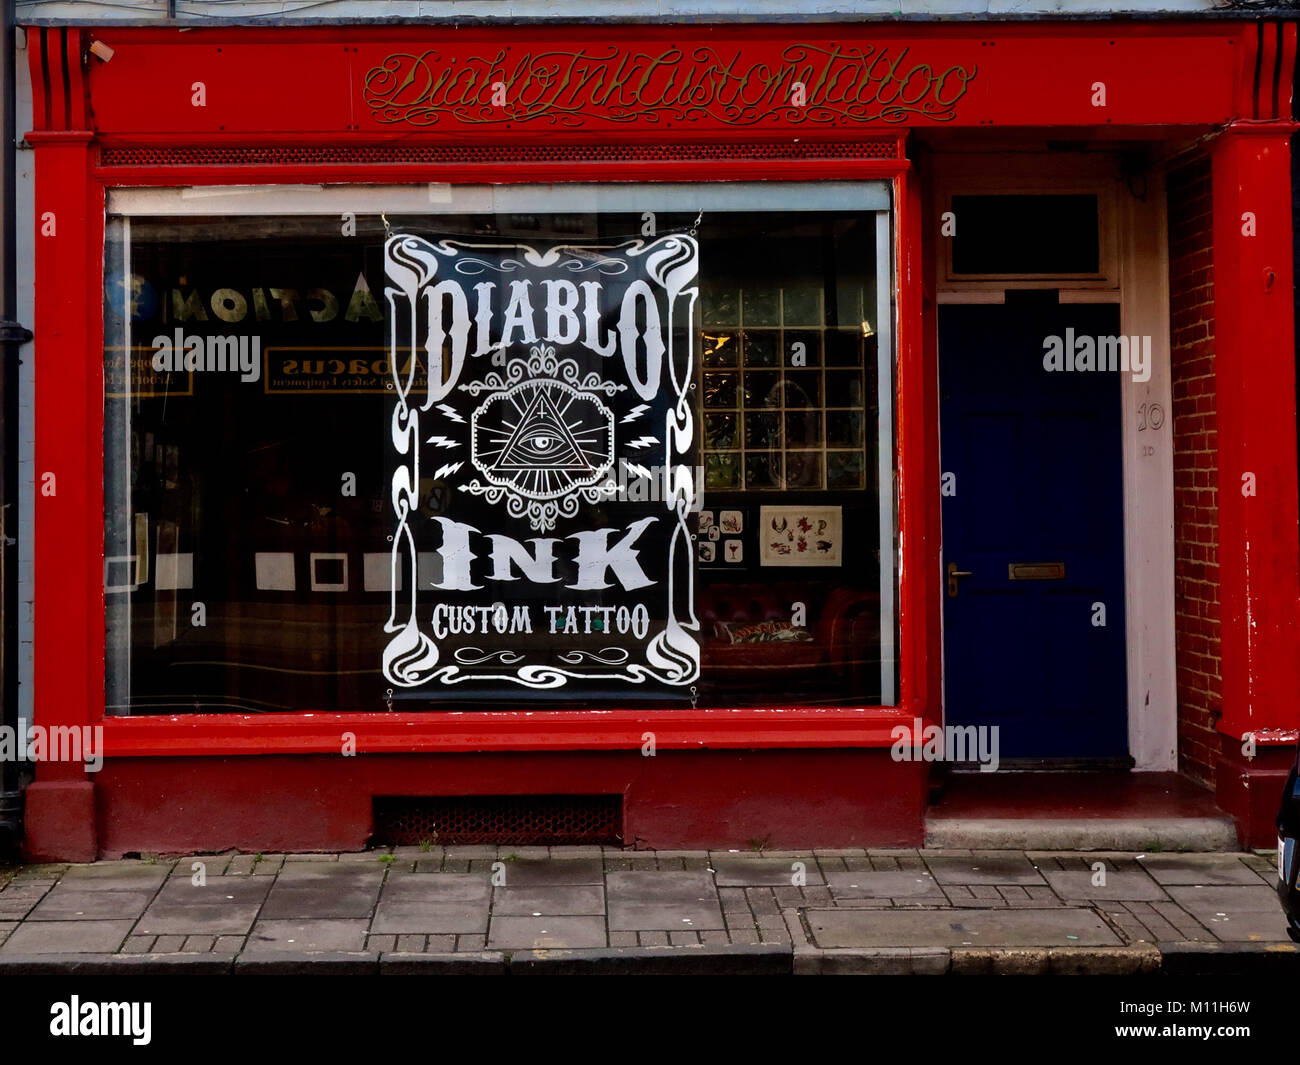 diablo-ink-custom-tattoo-parlour-shop-fr